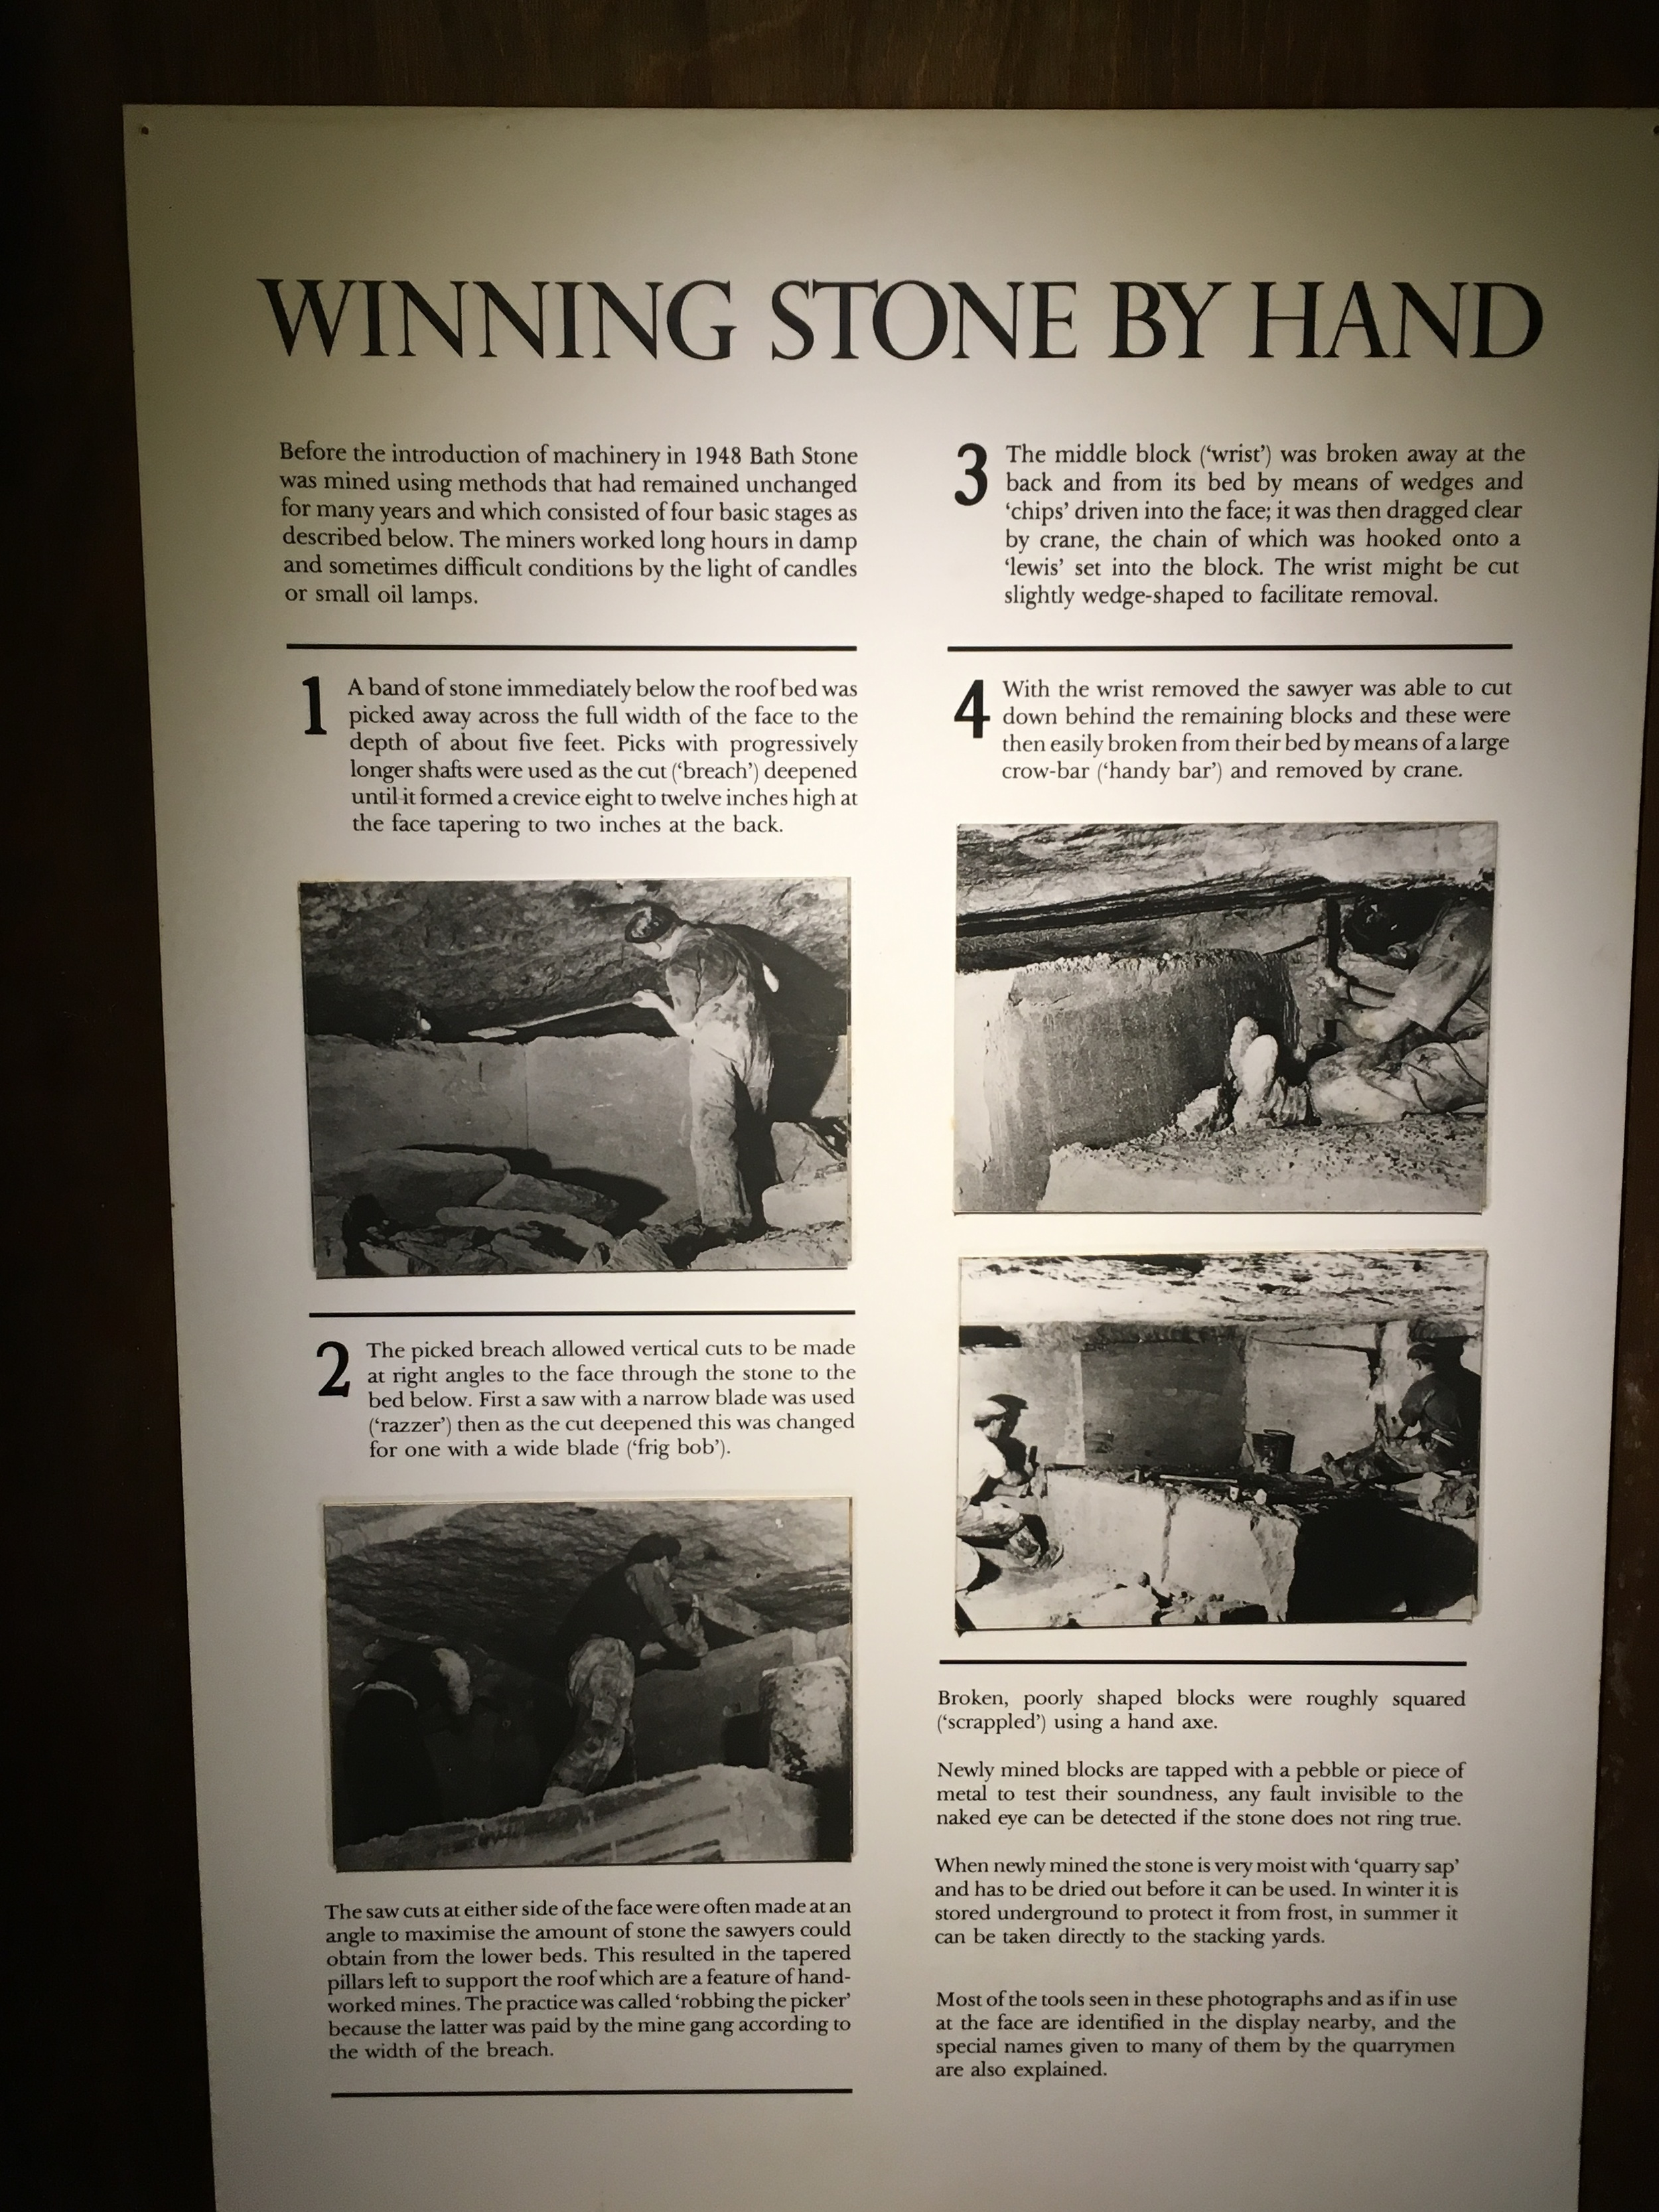 An explanation of the process of winning stone.